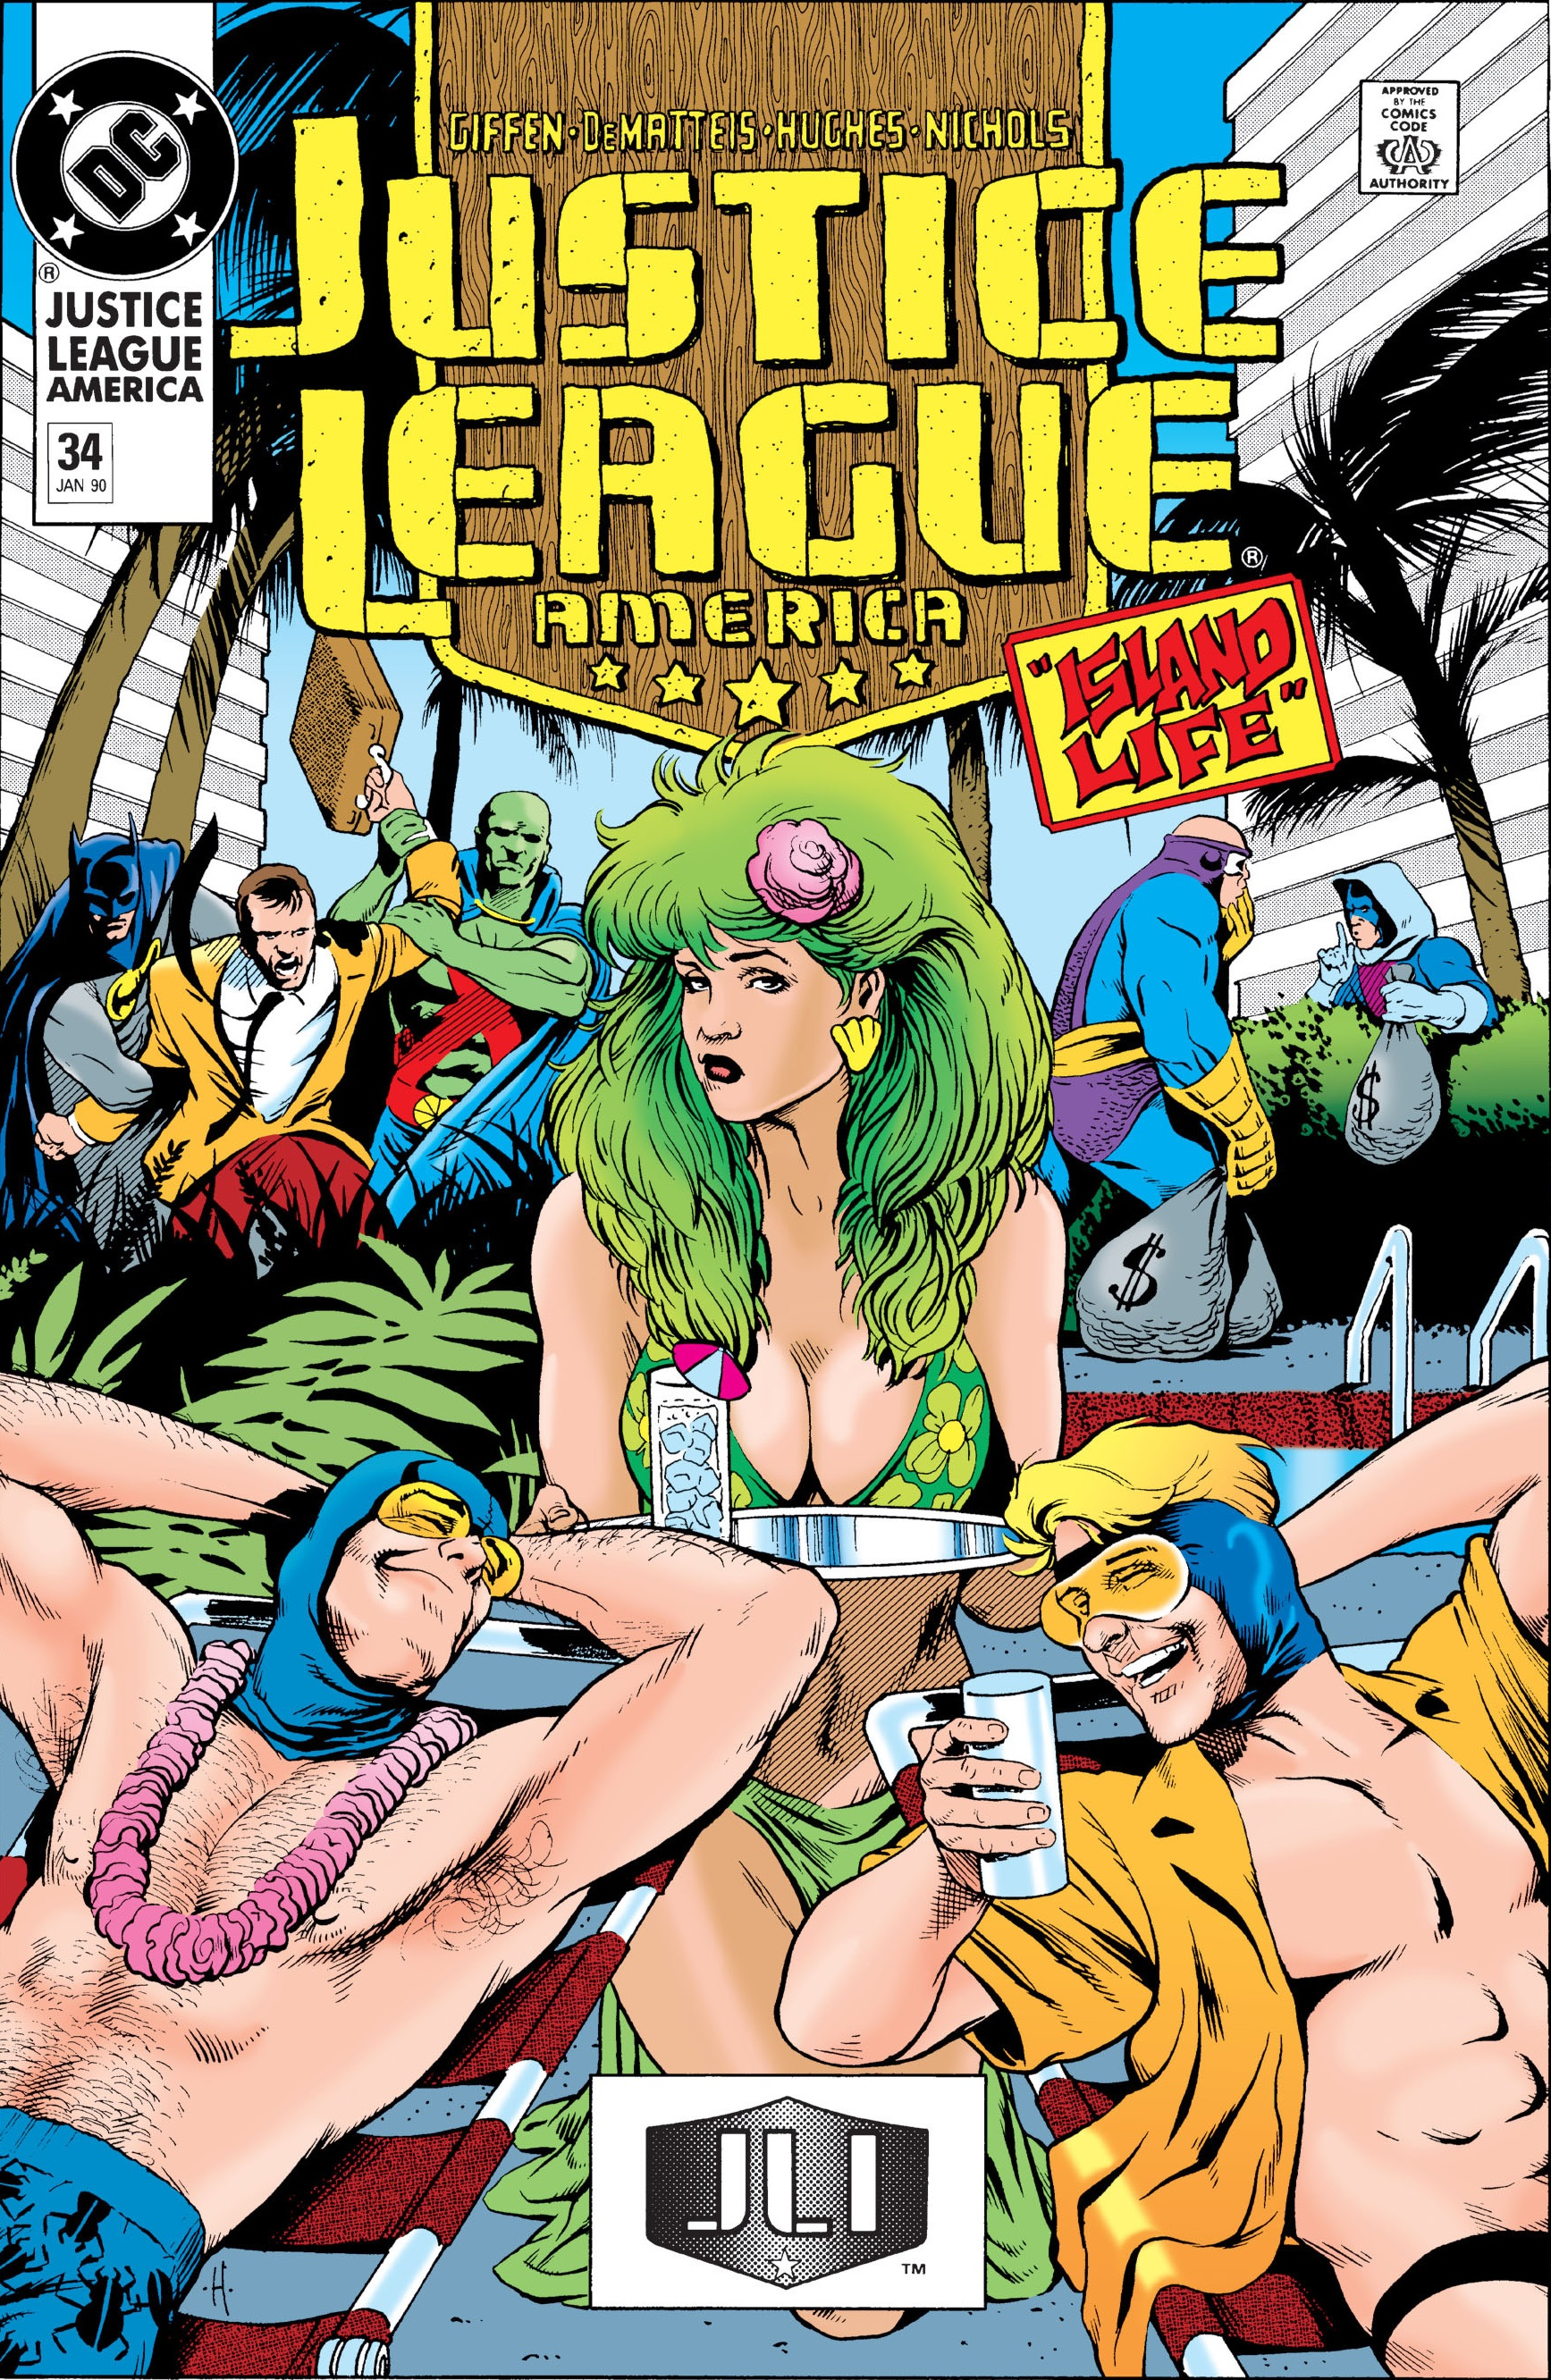 Justice League America #34 by Keith Giffen, J.M. DeMatteis, Adam Hughes, and Art Nichols